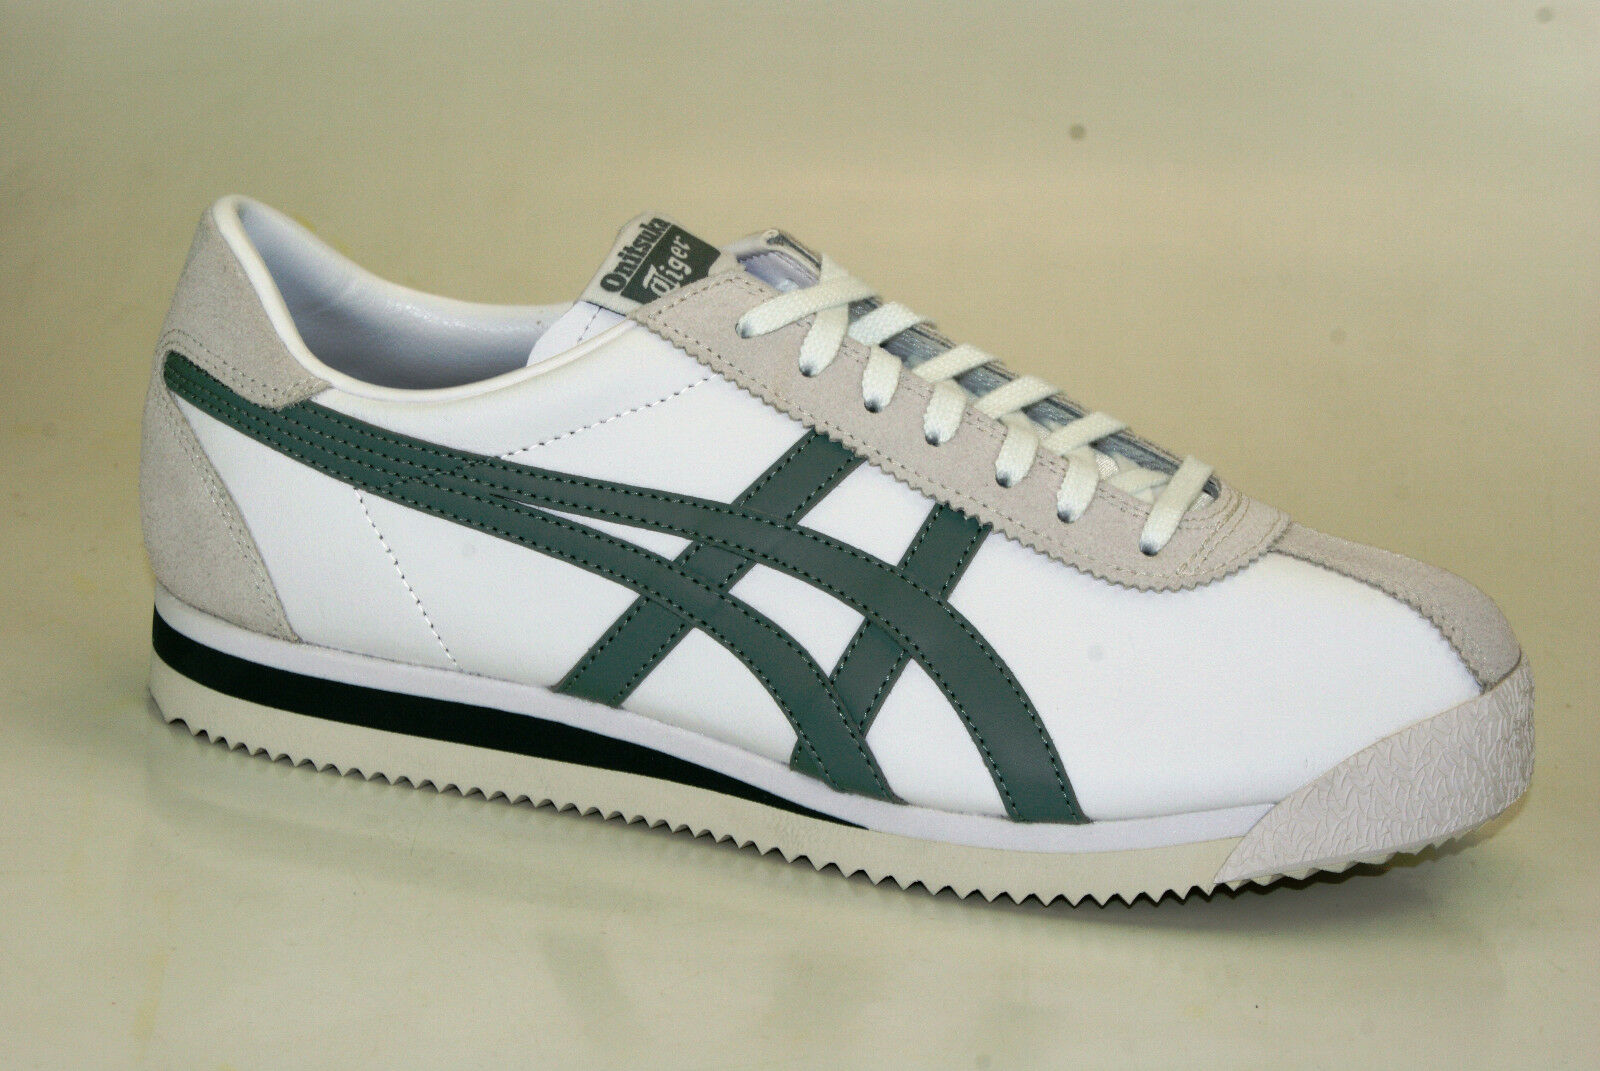 Onitsuka Tiger by Asics Corsair Sneakers shoes Trainers Lace up D7j4l-0196